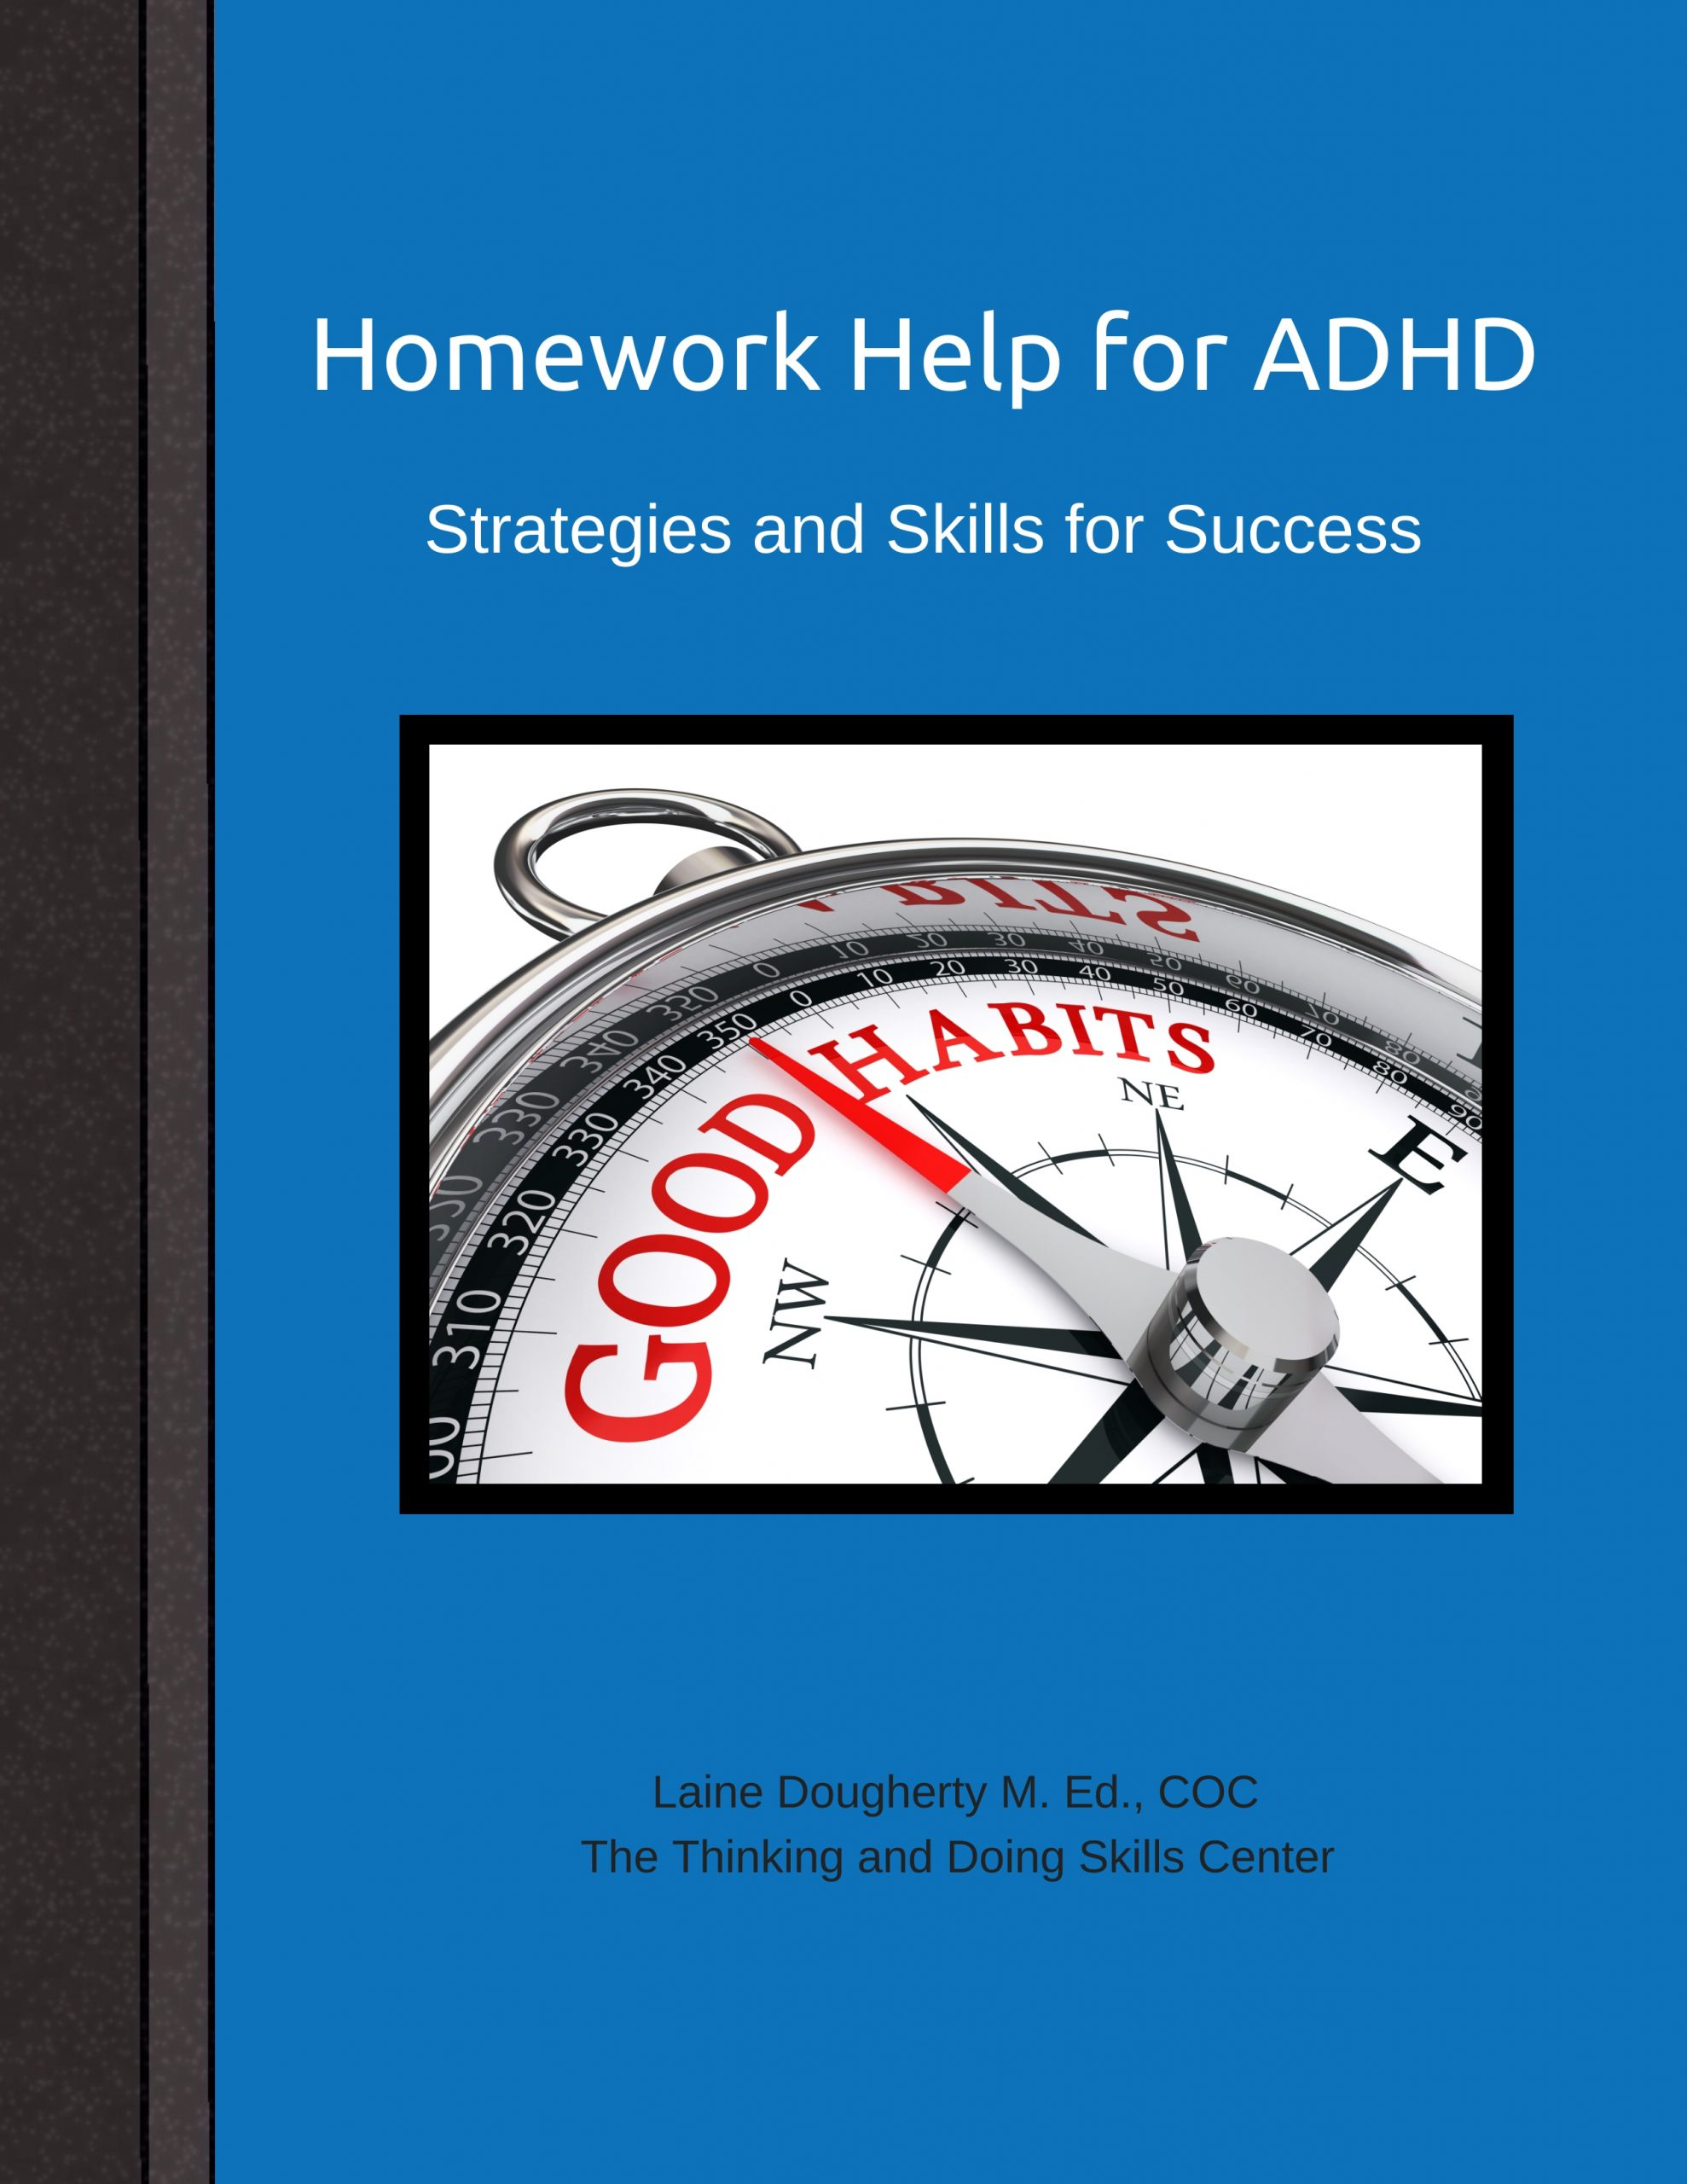 Laine Dougherty - Notebook - Homework Help for ADHD - blue #1